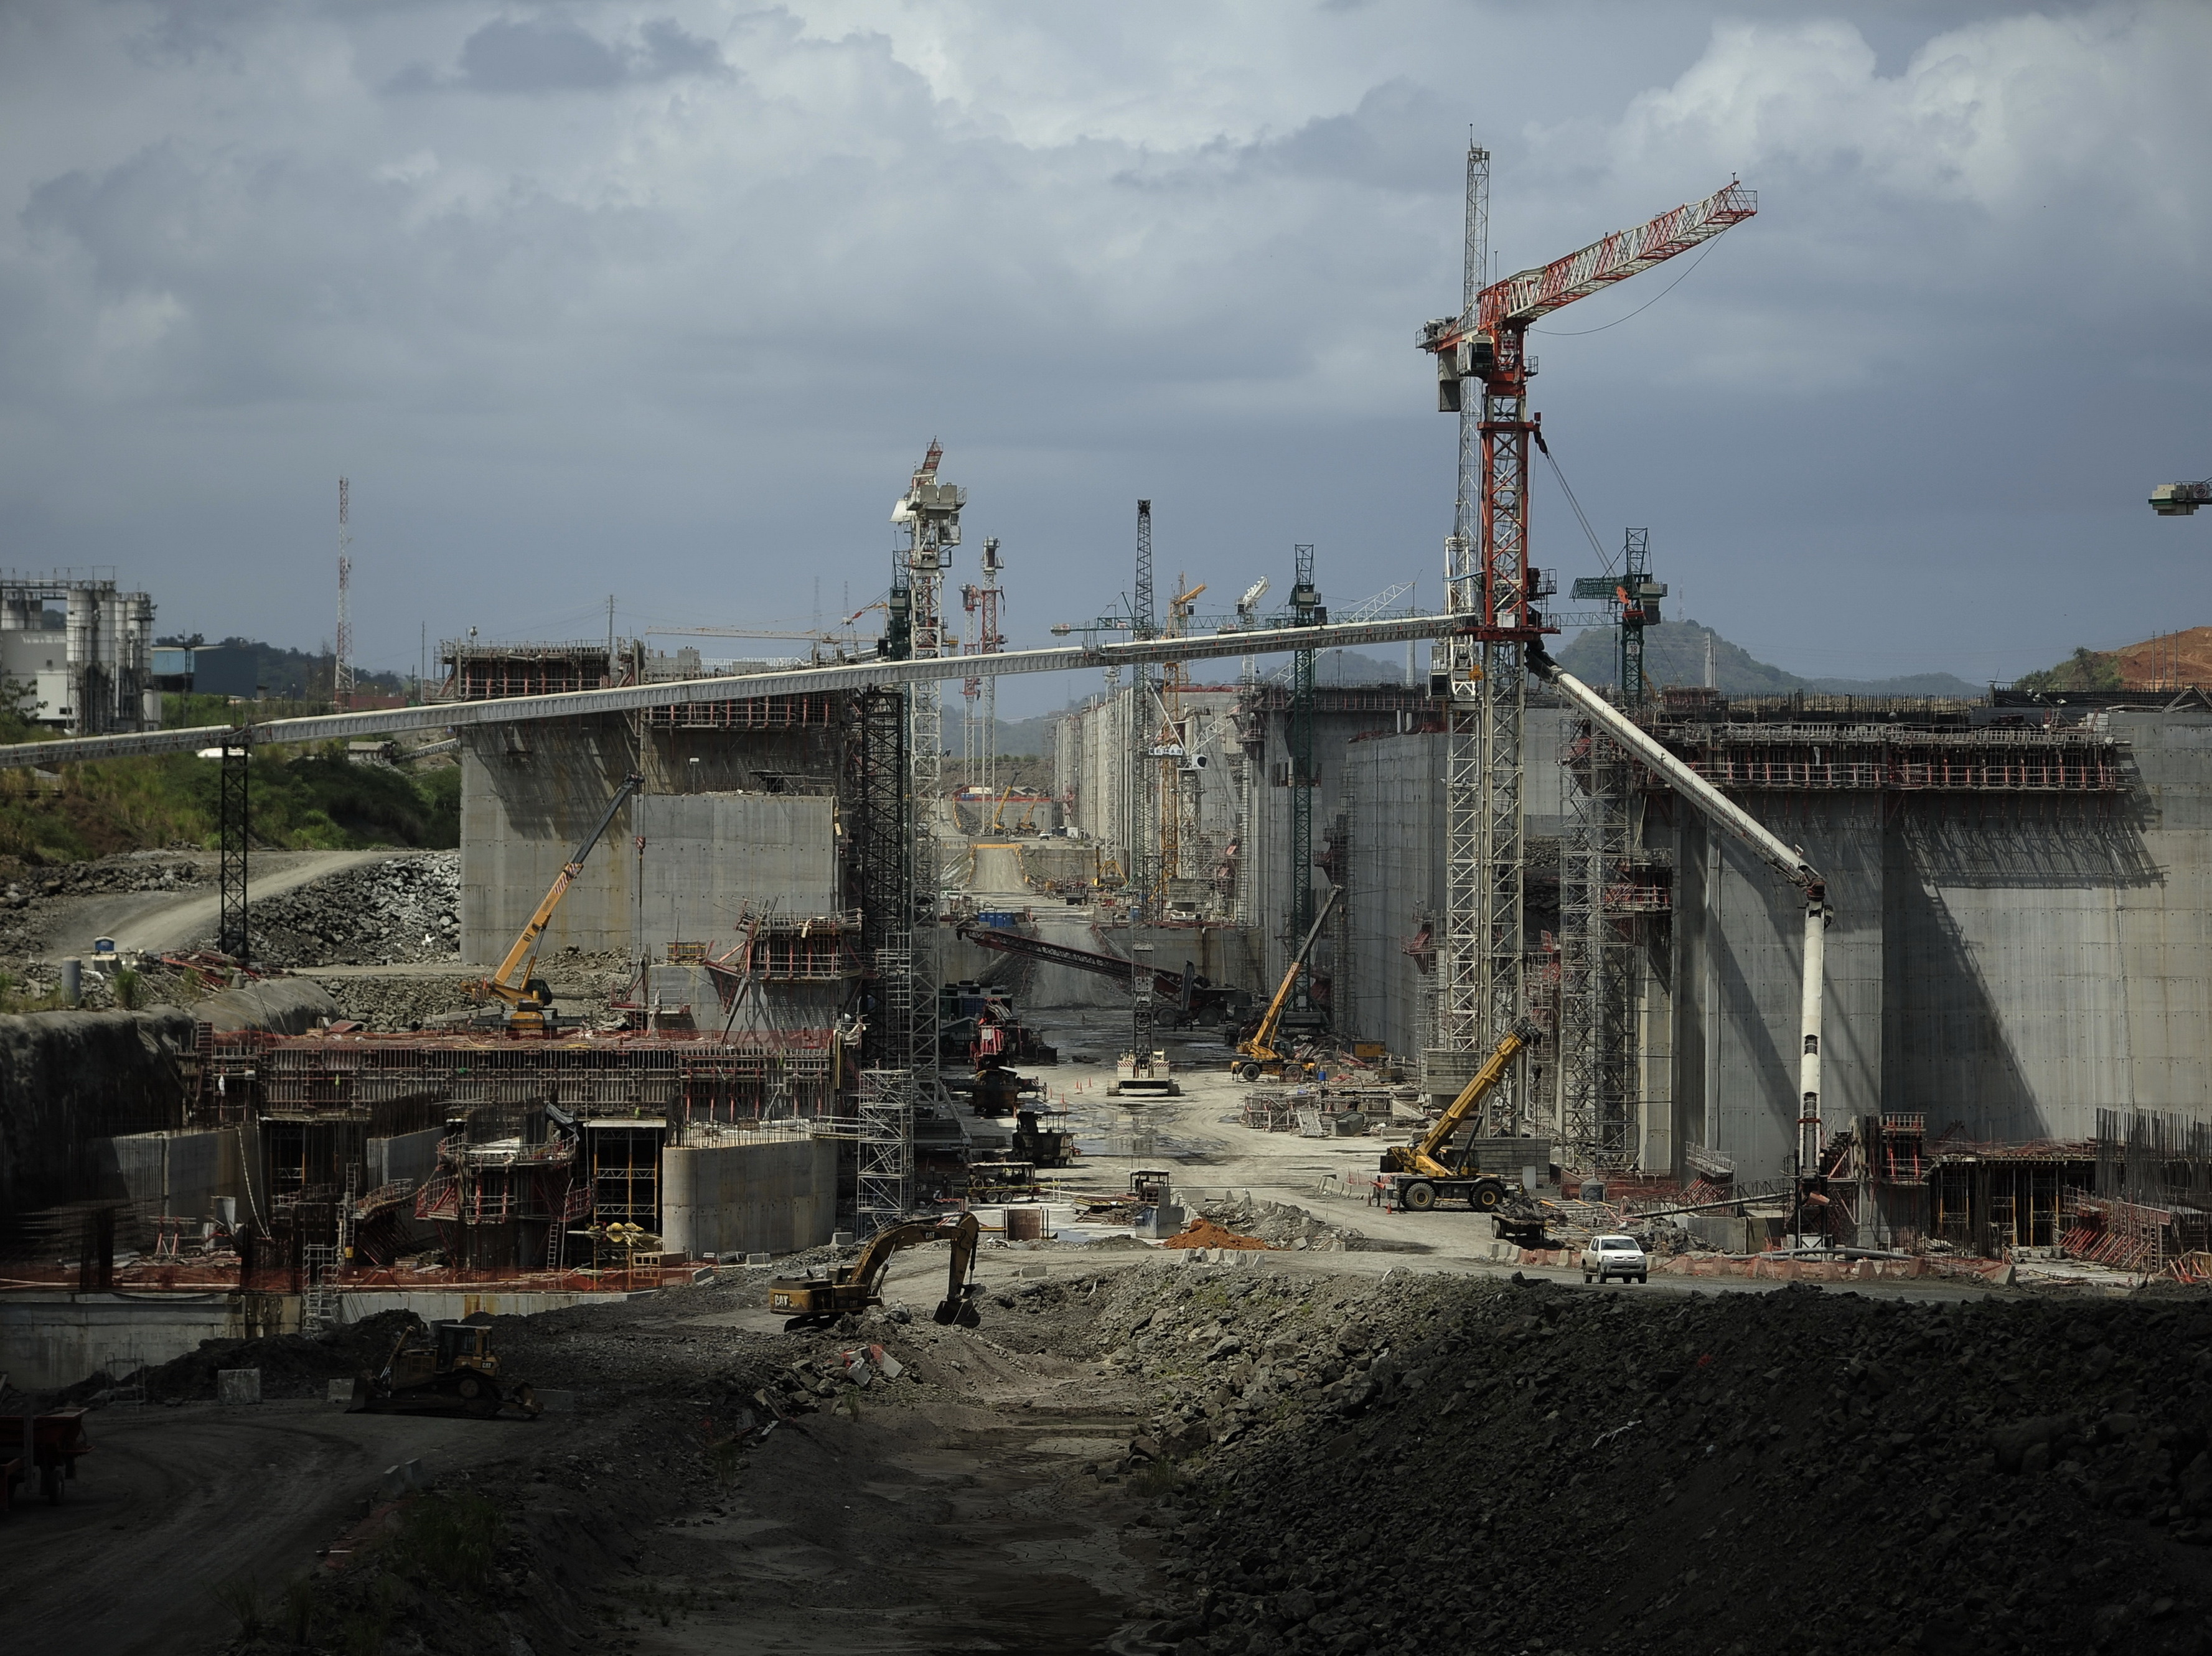 Panama Canal Expansion Suspended Over Cost-Overrun Dispute